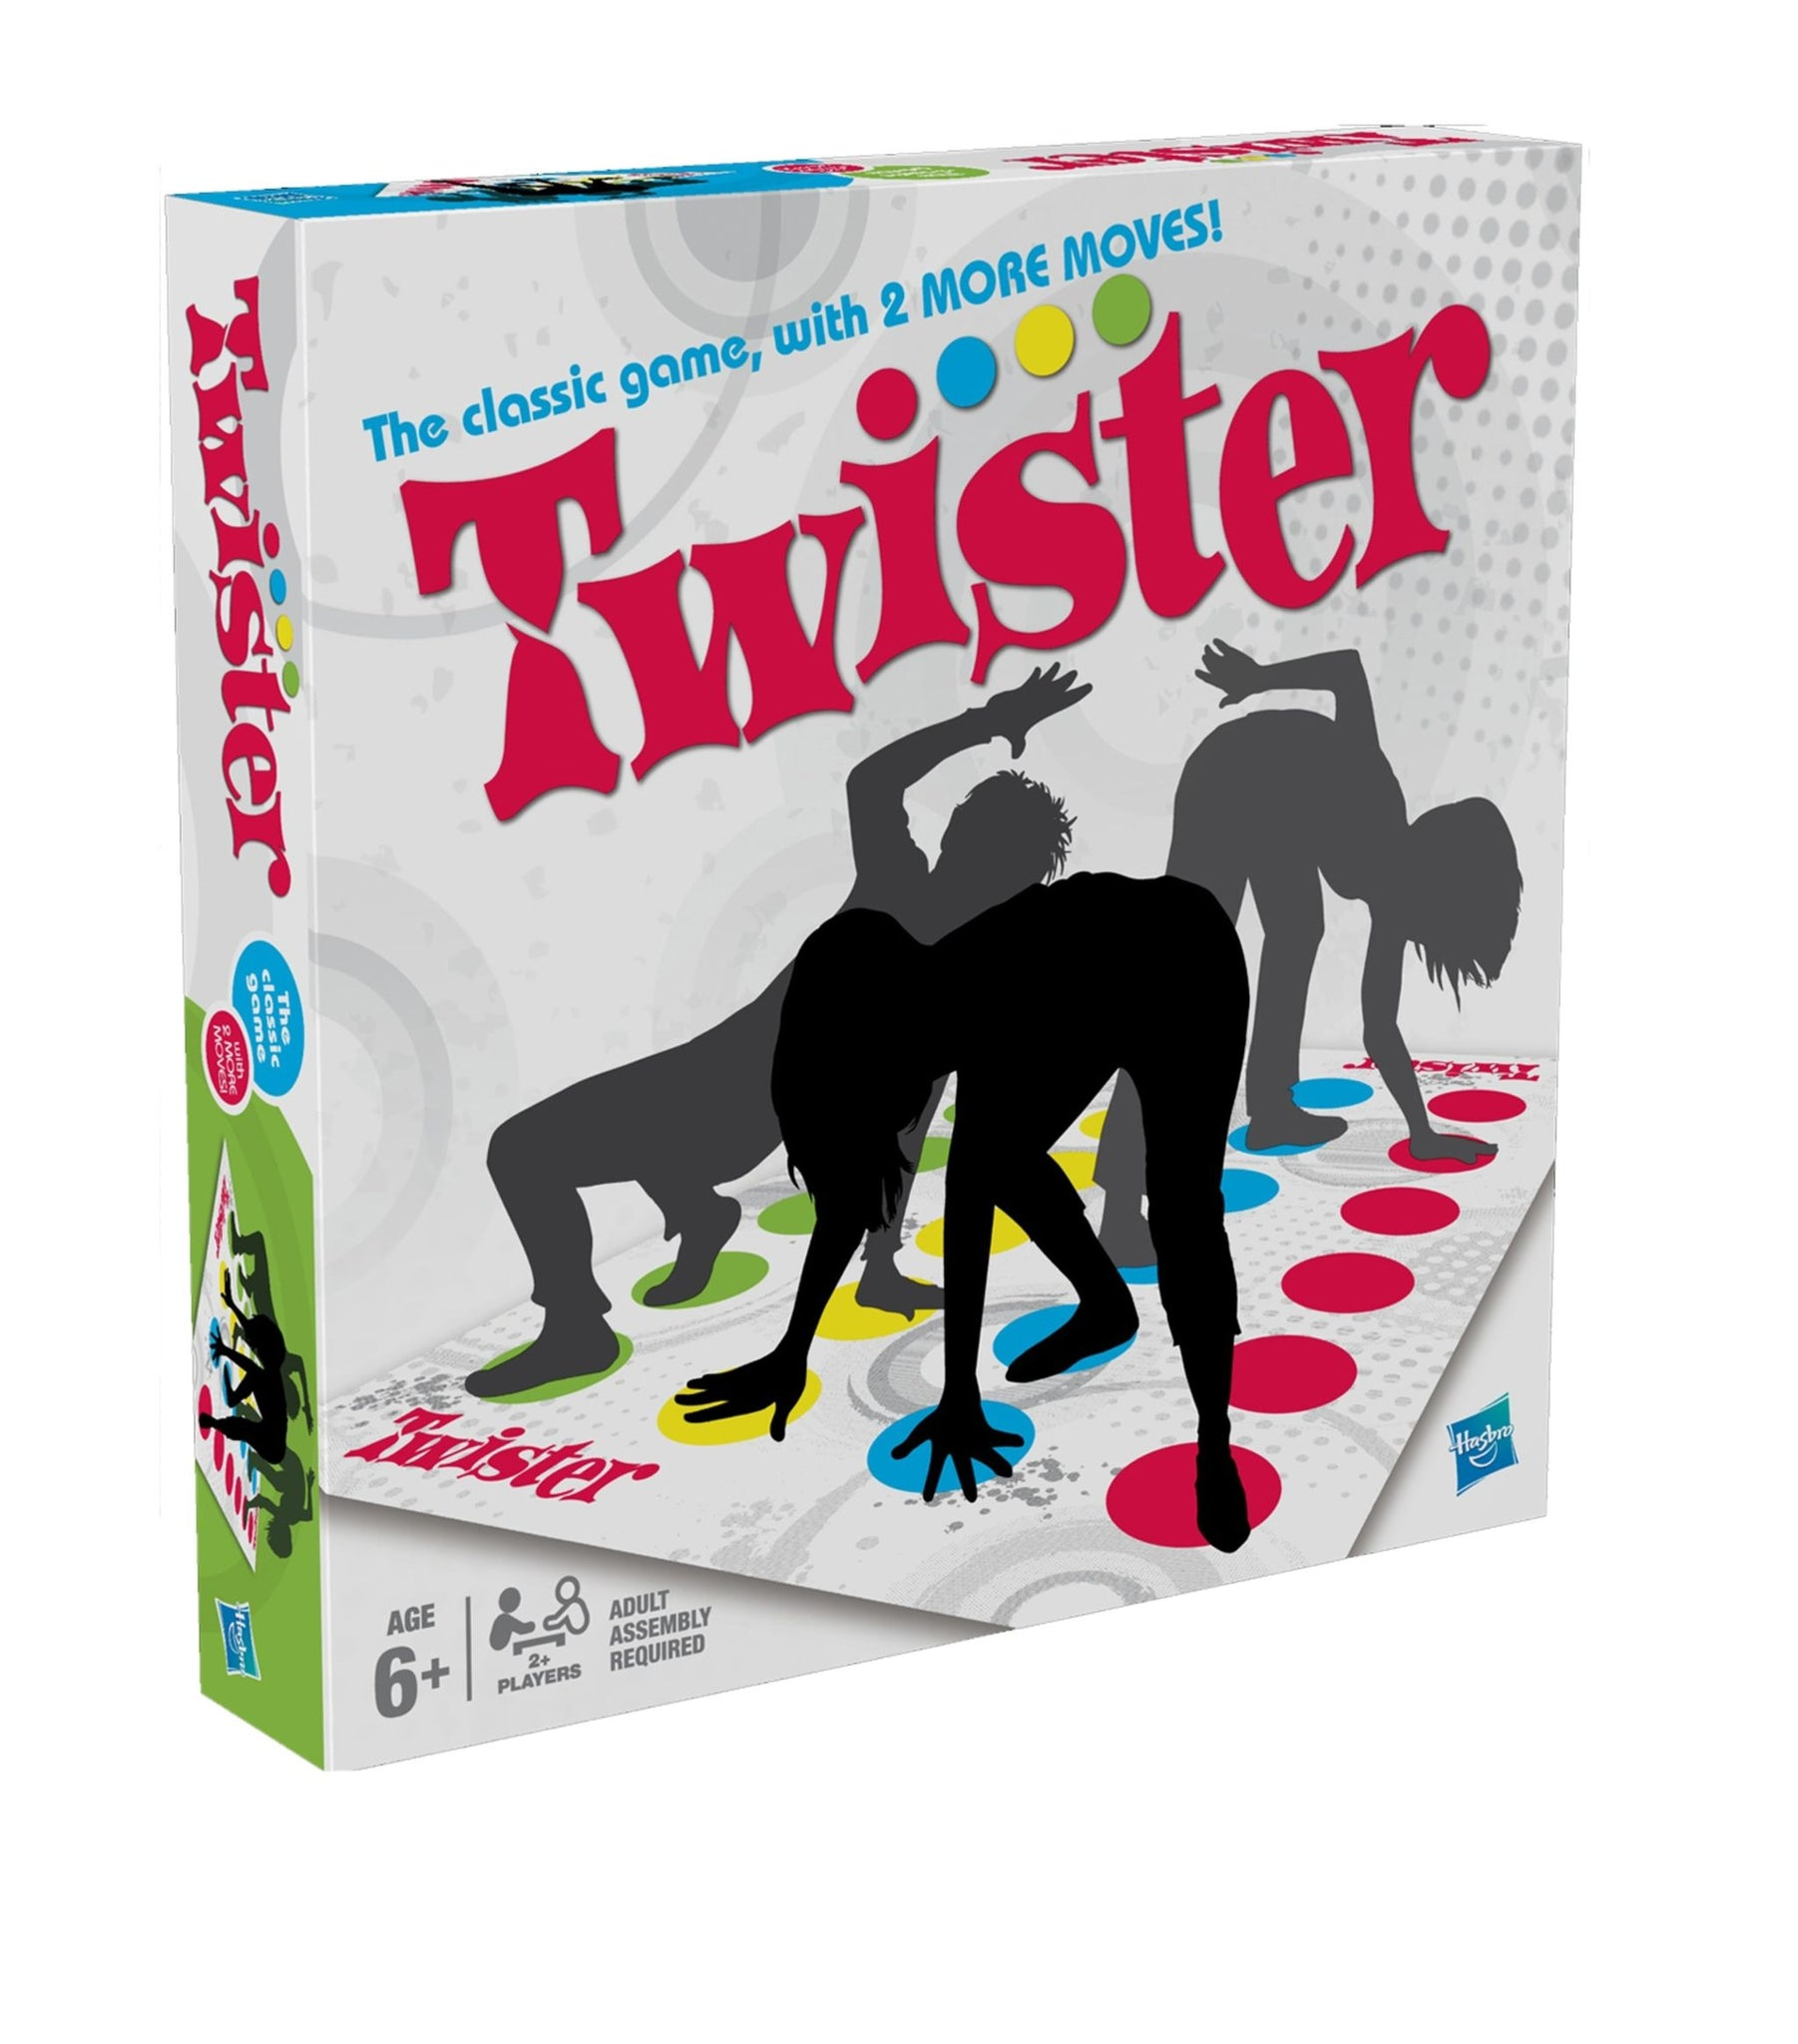 Twister by Hasbro Games